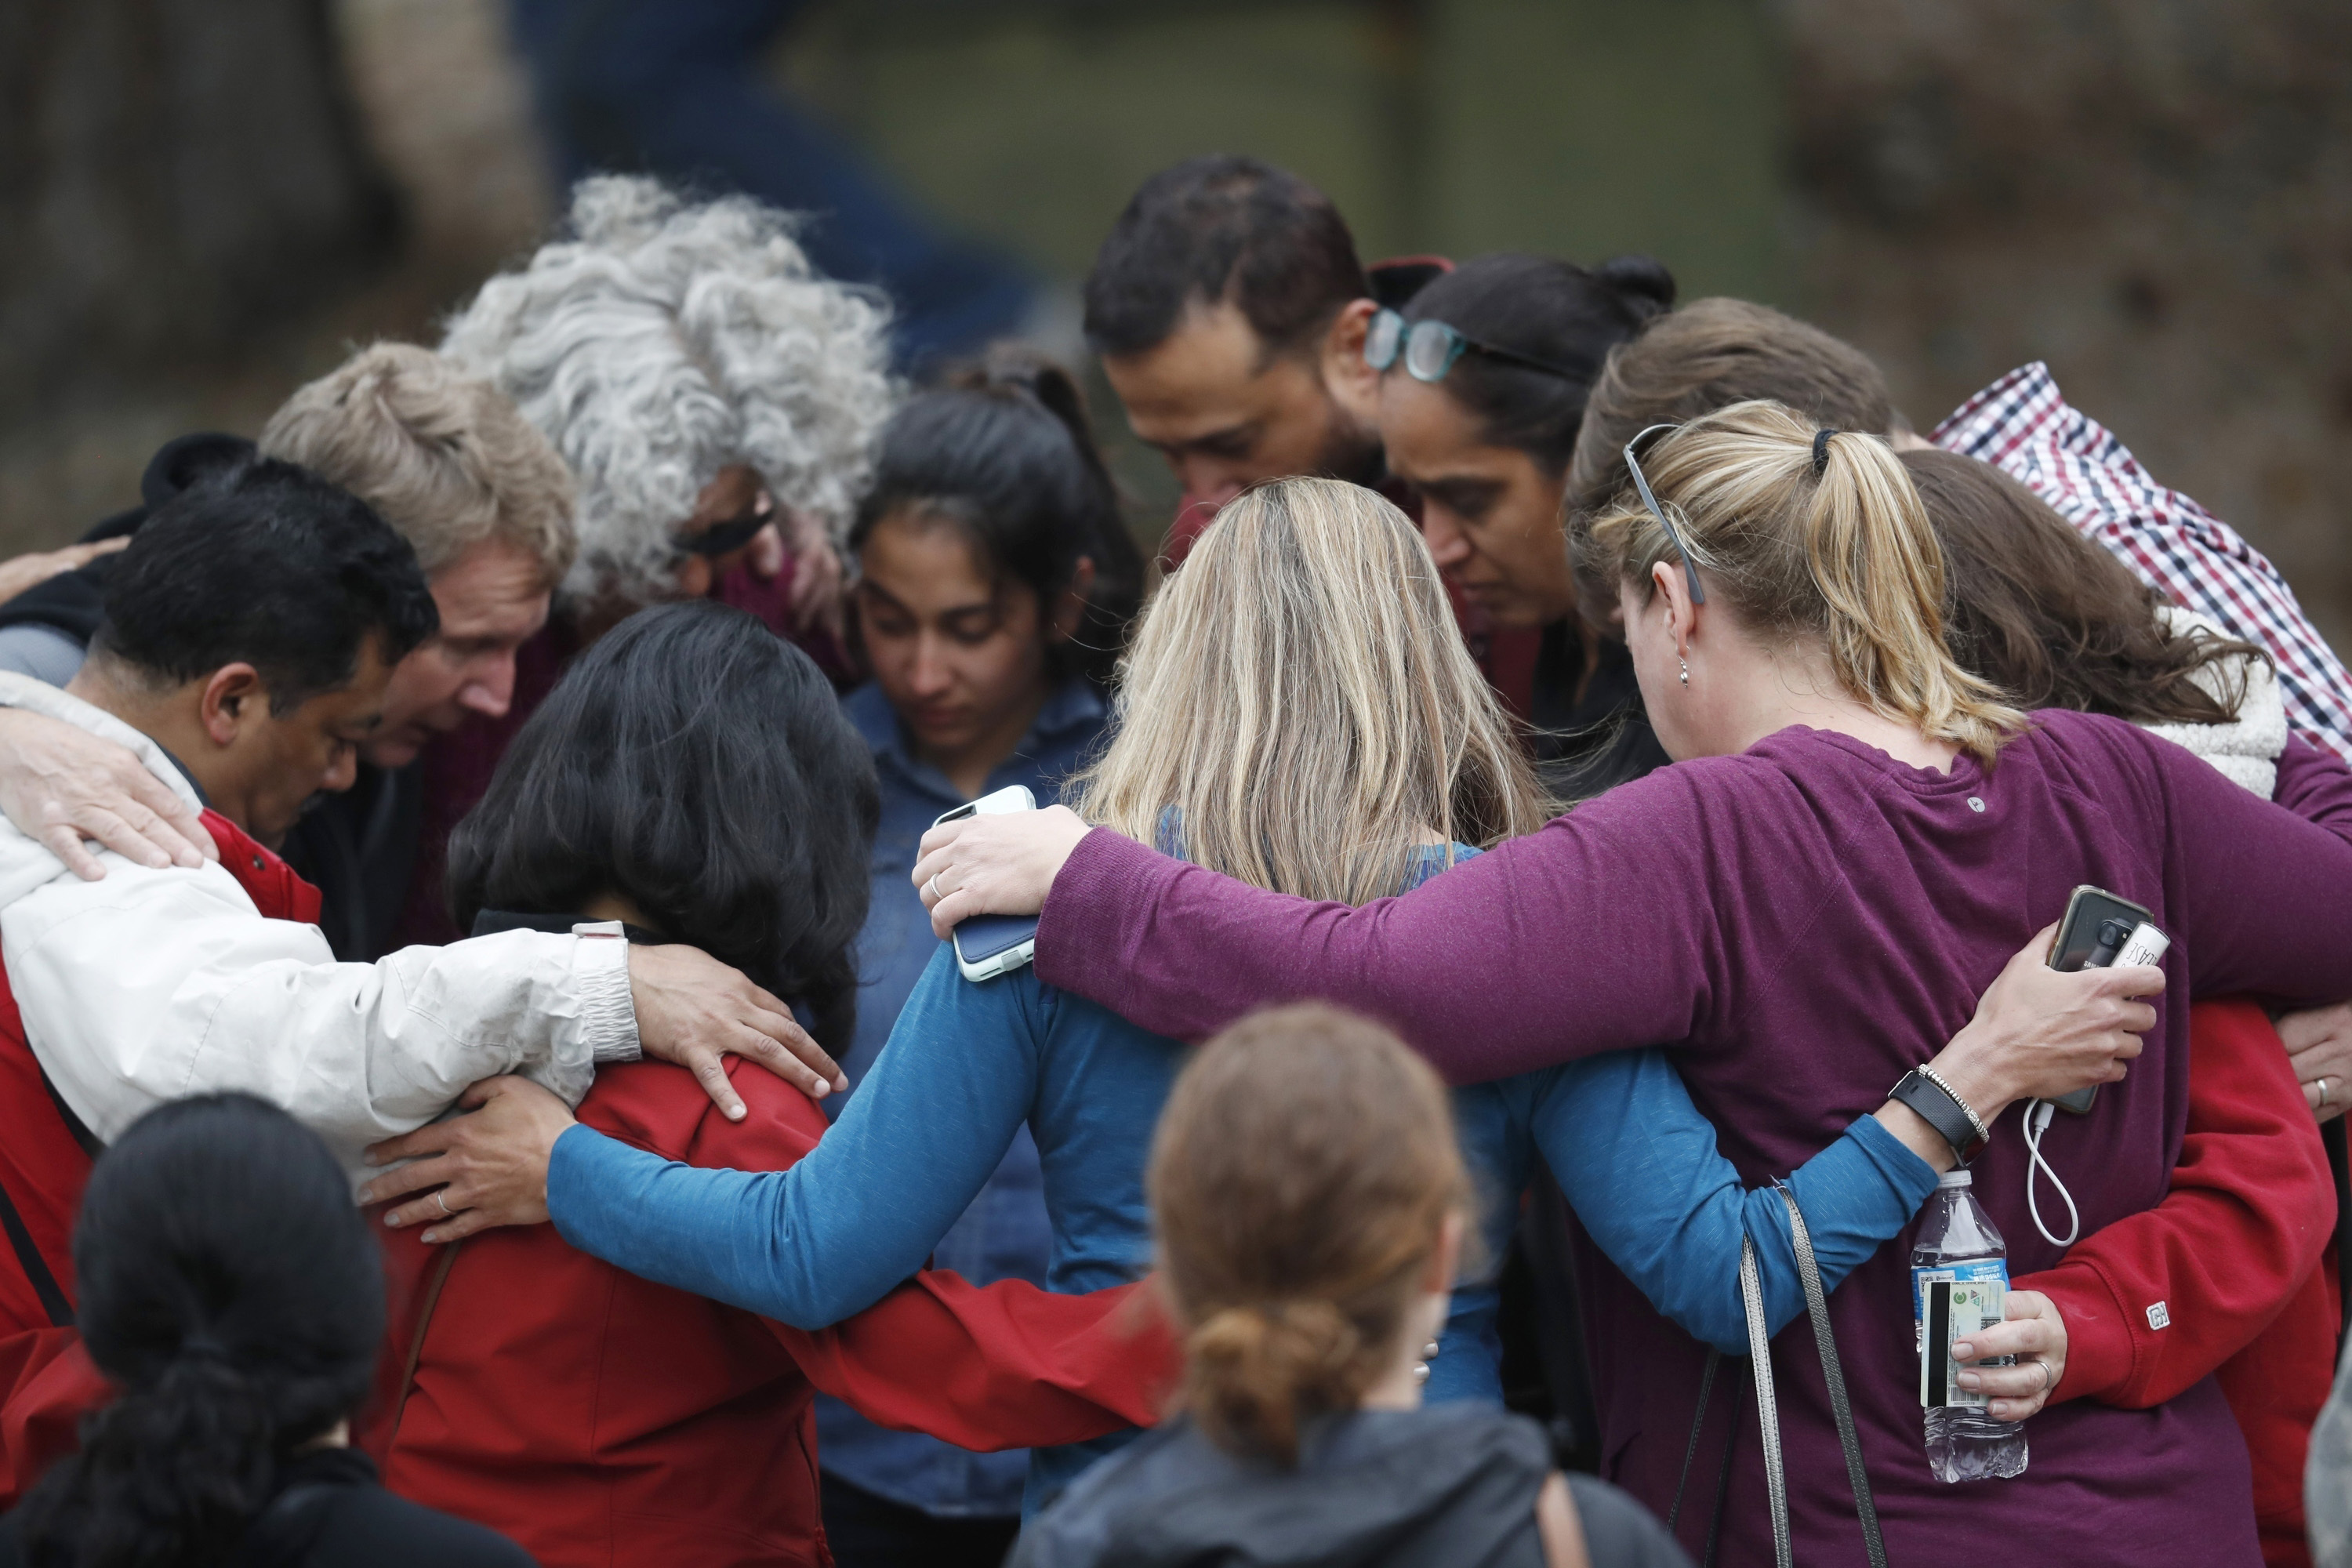 Parents gather in a circle to pray at a recreation center where students were reunited with their parents after a shooting at a suburban Denver middle school in Highlands Ranch, Colorado, May 7, 2019.